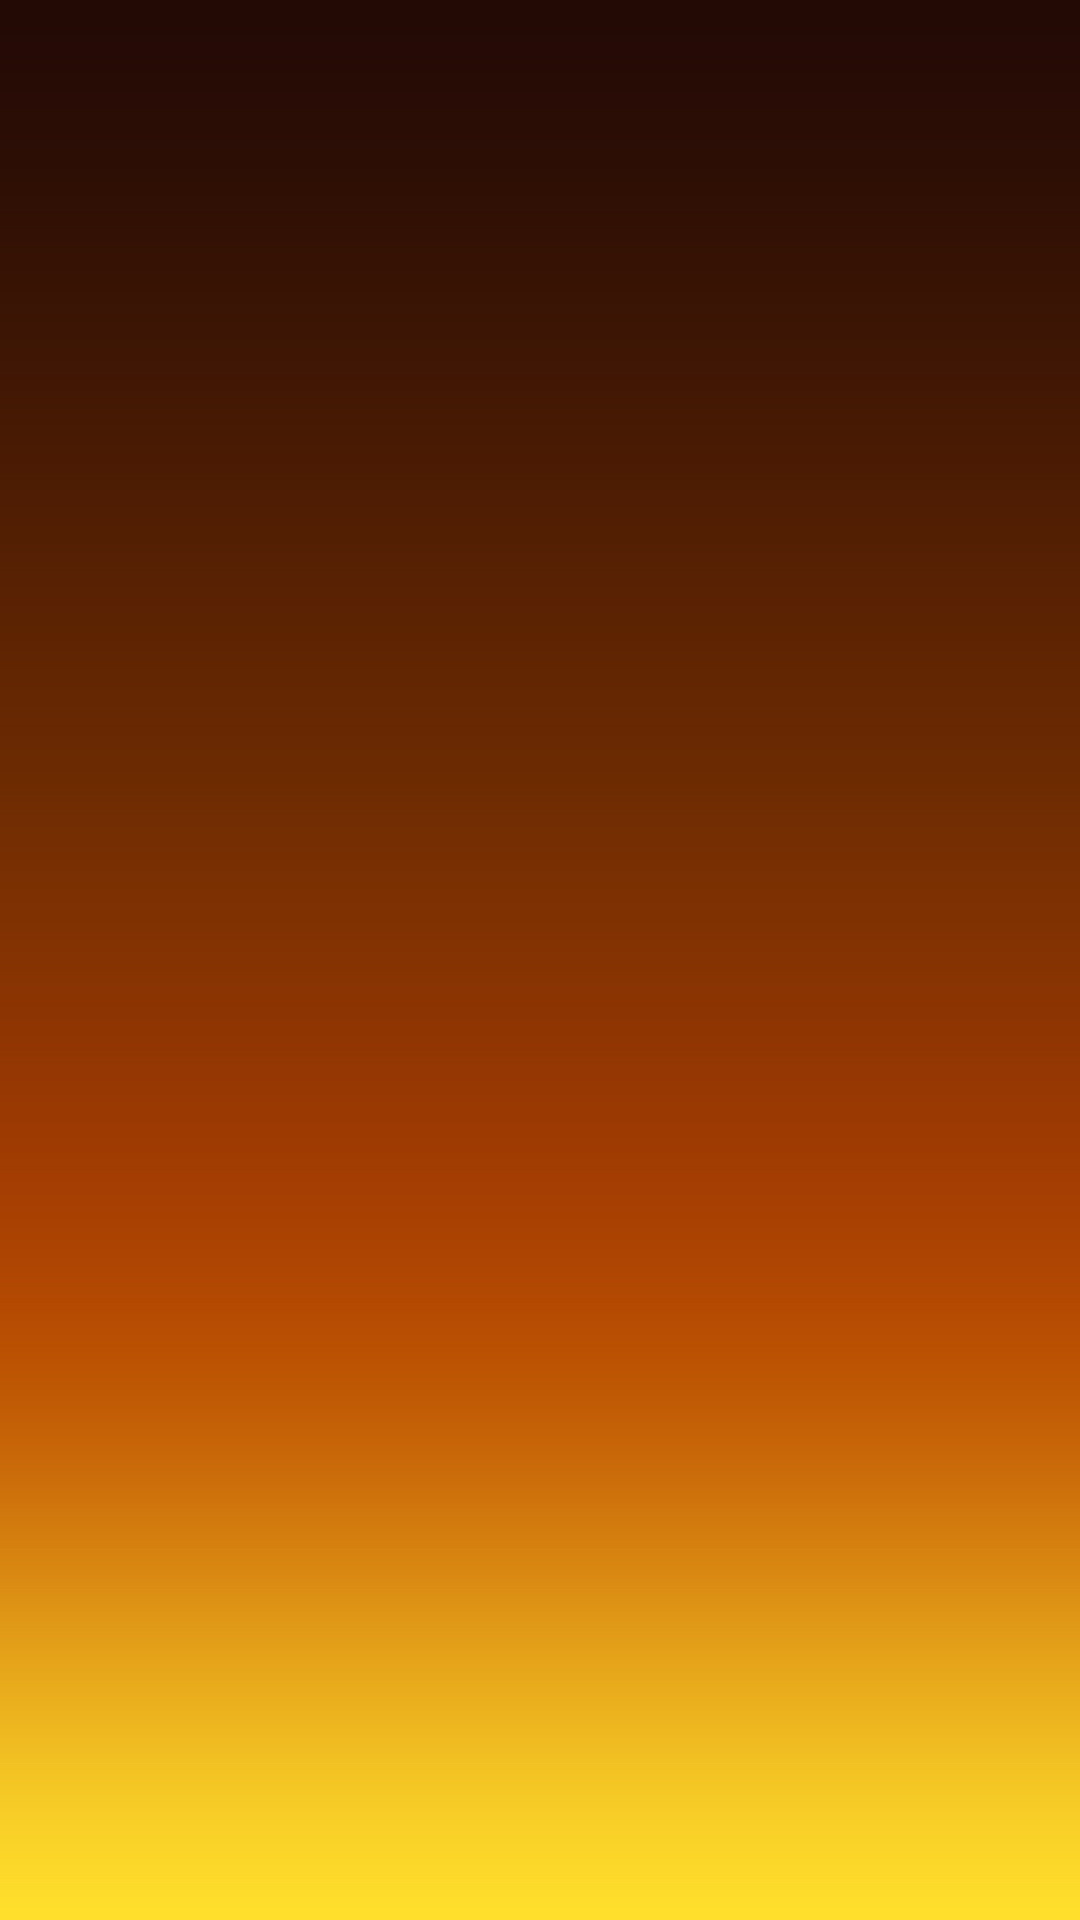 gradient-orange-warm-blur-a5.jpg